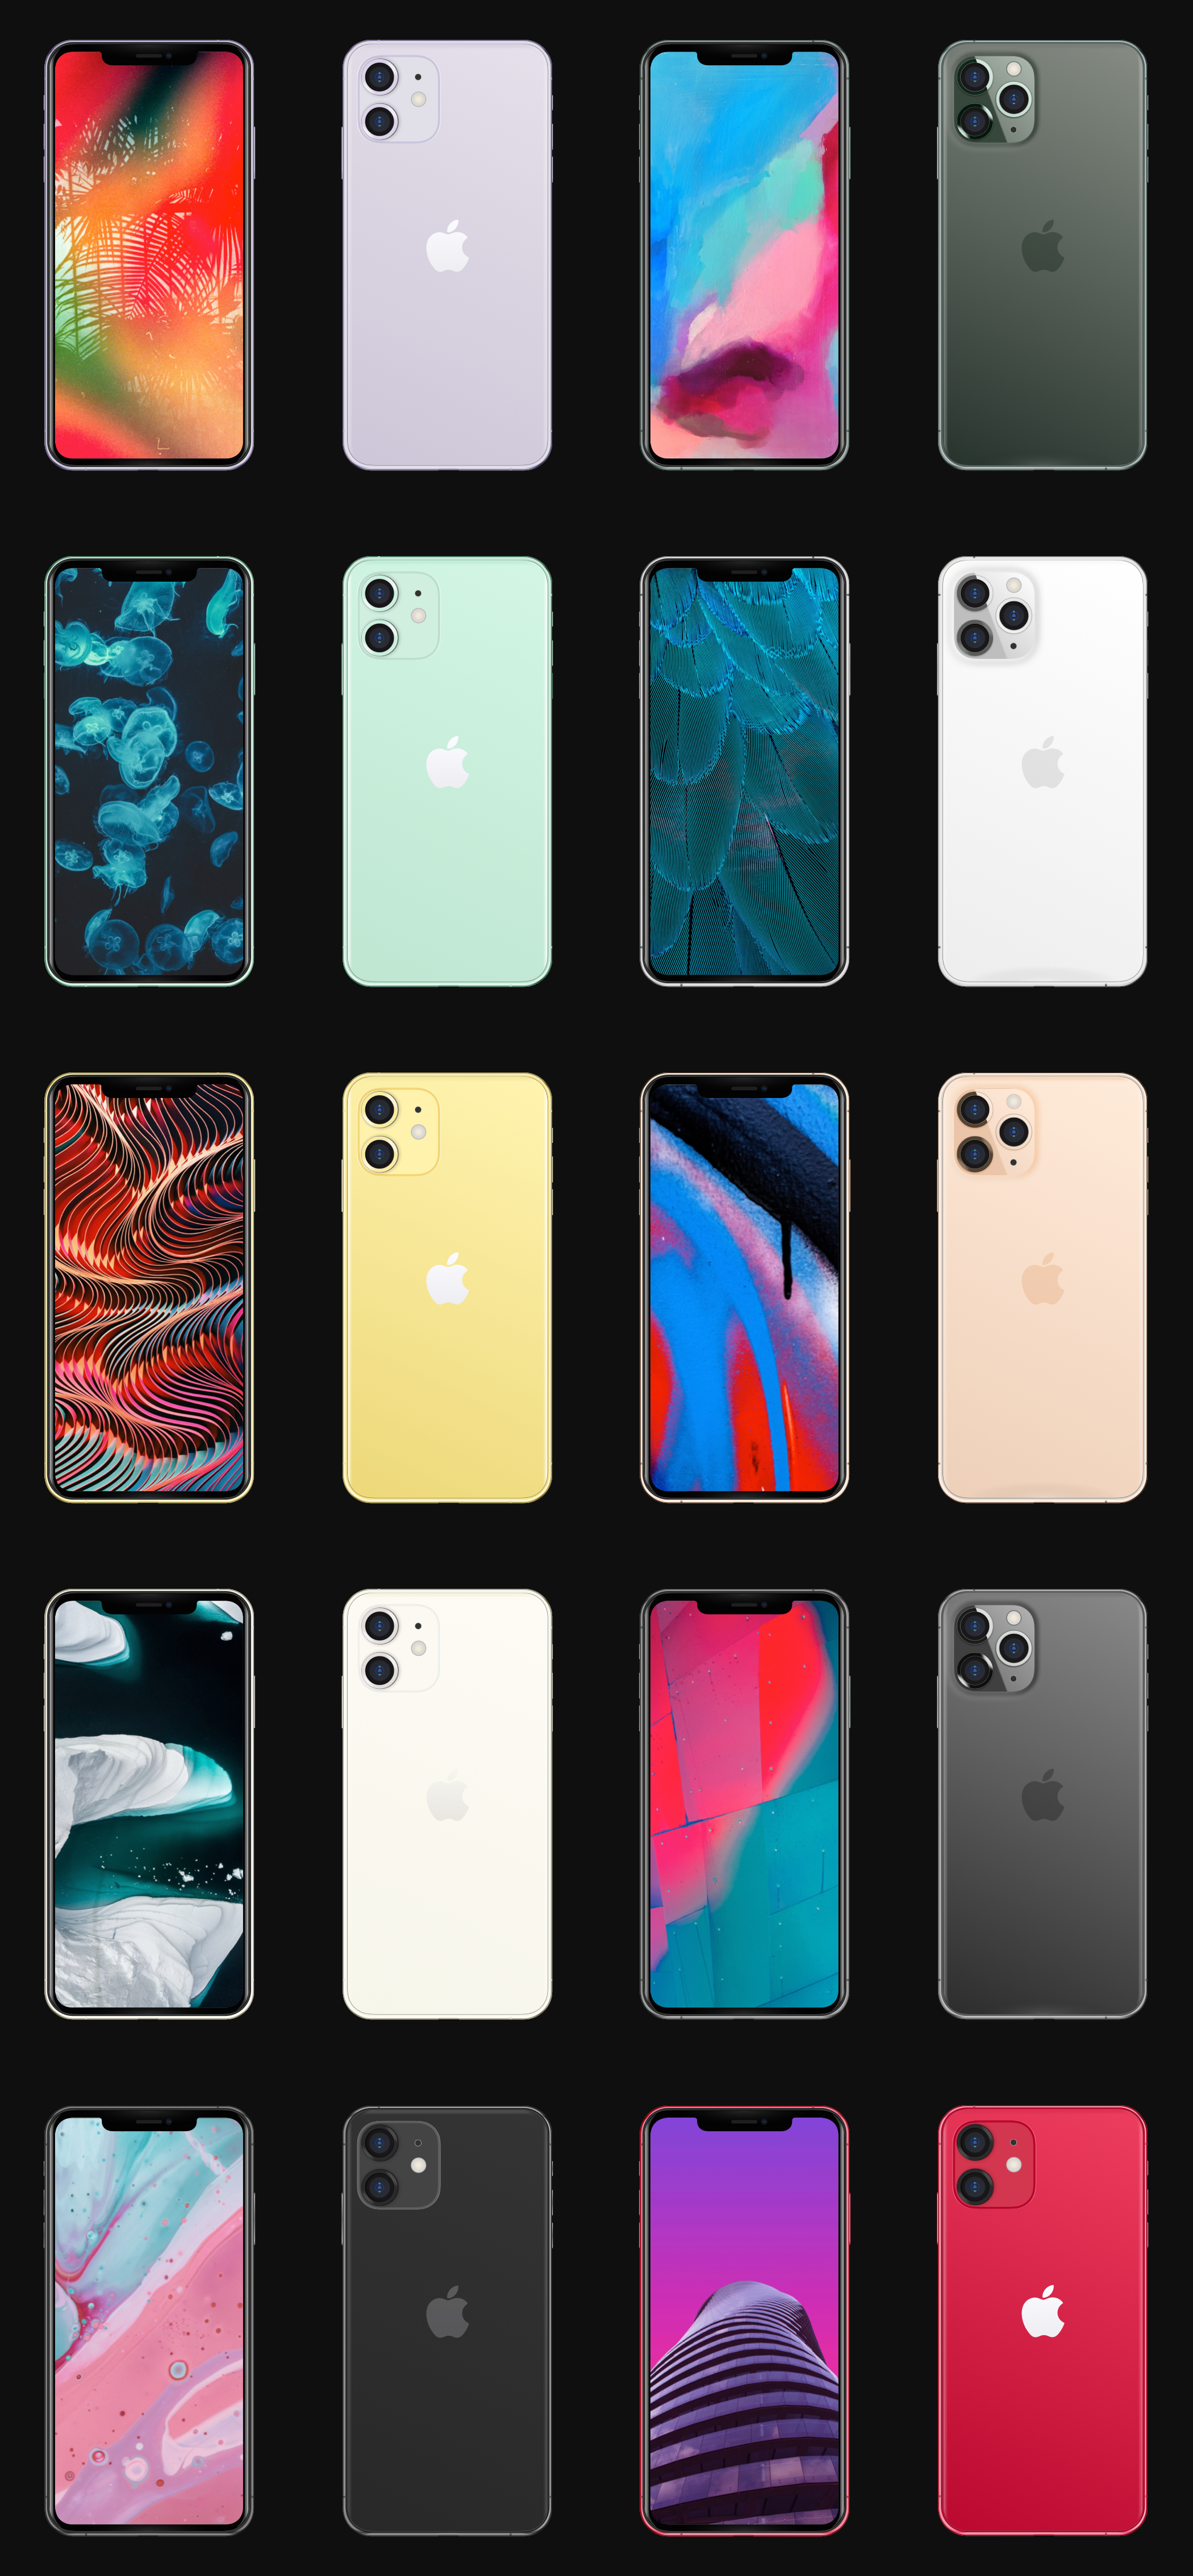 iPhone 11 Mockups for Sketch - iPhone 11 + iPhone 11 Pro. 10 variants